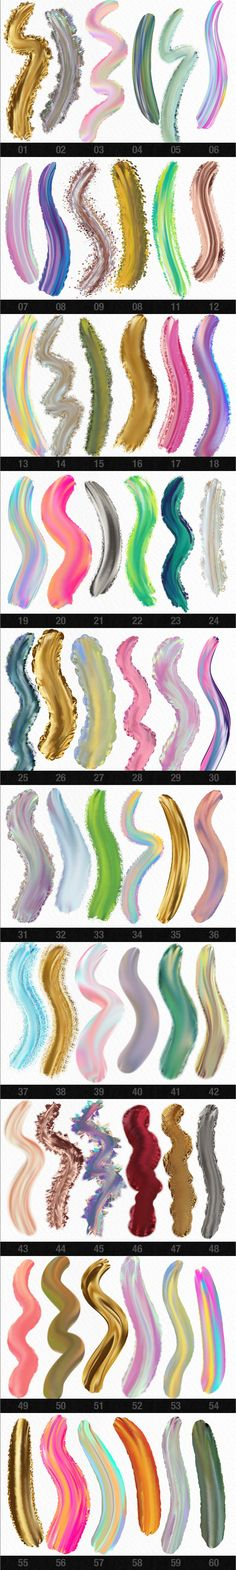 wet paint adobe photoshop brushes - paint in amazing, multi-colored brush strokes, metallic brush strokes (gold, silver, copper, rose gold), & iridescent brush strokes create feminine designs, digital illustration, invitations, designs, blog graphics feminine branding, branding, printables, stationery, hand painted typography, patterns, surface pattern design, and more! wet paint effects, wet brush technology, better than procreate & ipad with apple pencil! https://crmrkt.com/RQbe9x